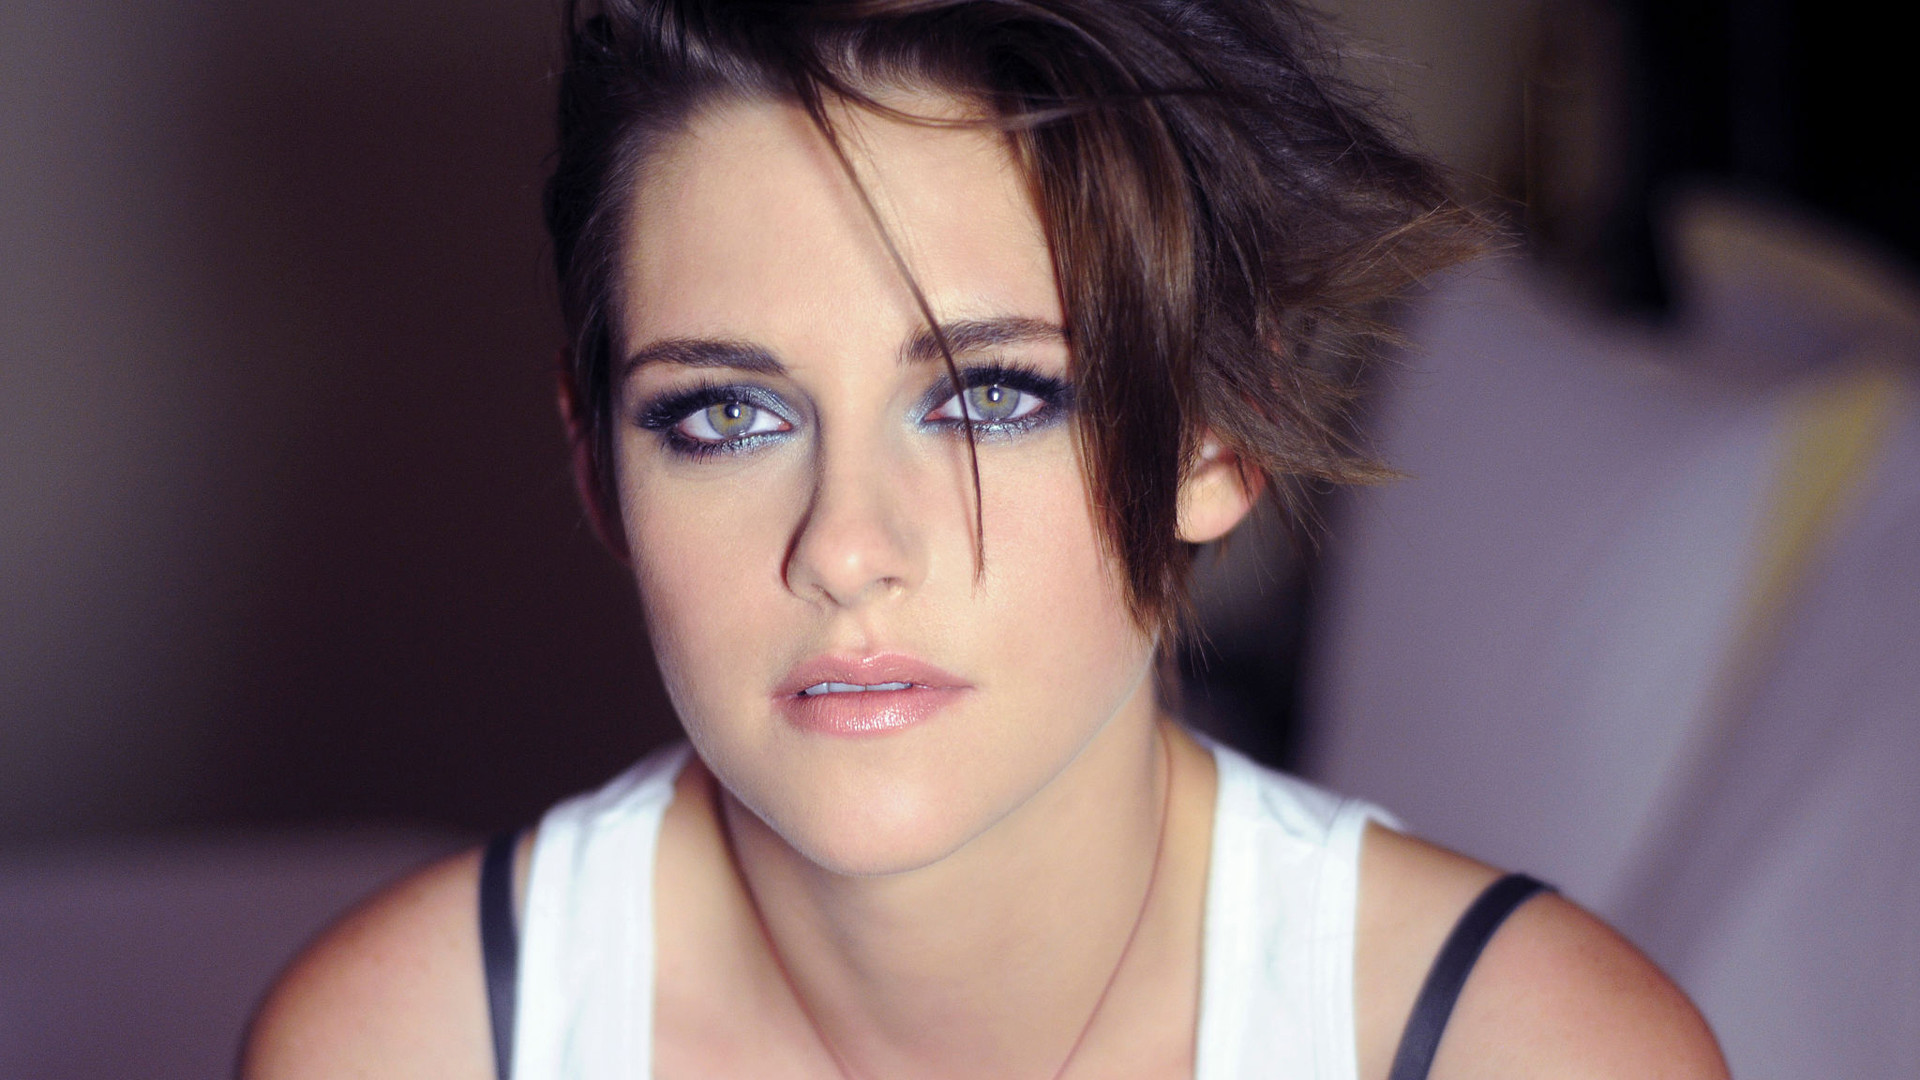 Res: 1920x1080, HD Kristen Stewart Wallpapers 81 HD Kristen Stewart Wallpapers 82